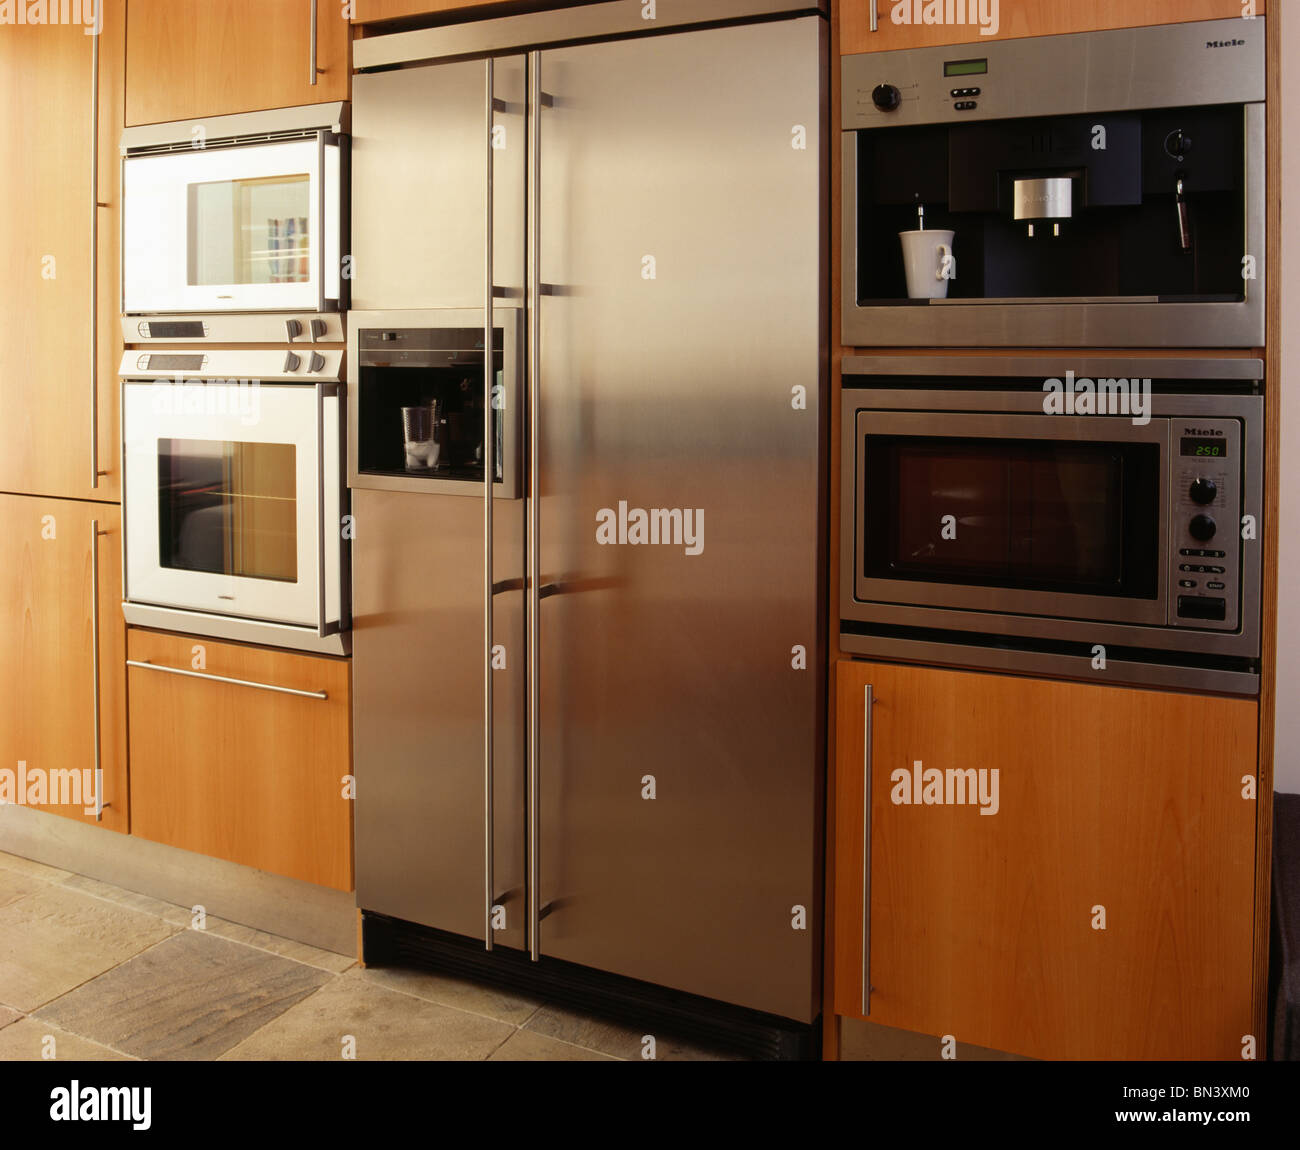 Large Fridges And Freezers Part - 30: Large Stainless Steel American Style Fridge-freezer And Wall-mounted Double  Oven And Coffee Machine In Modern Kitchen